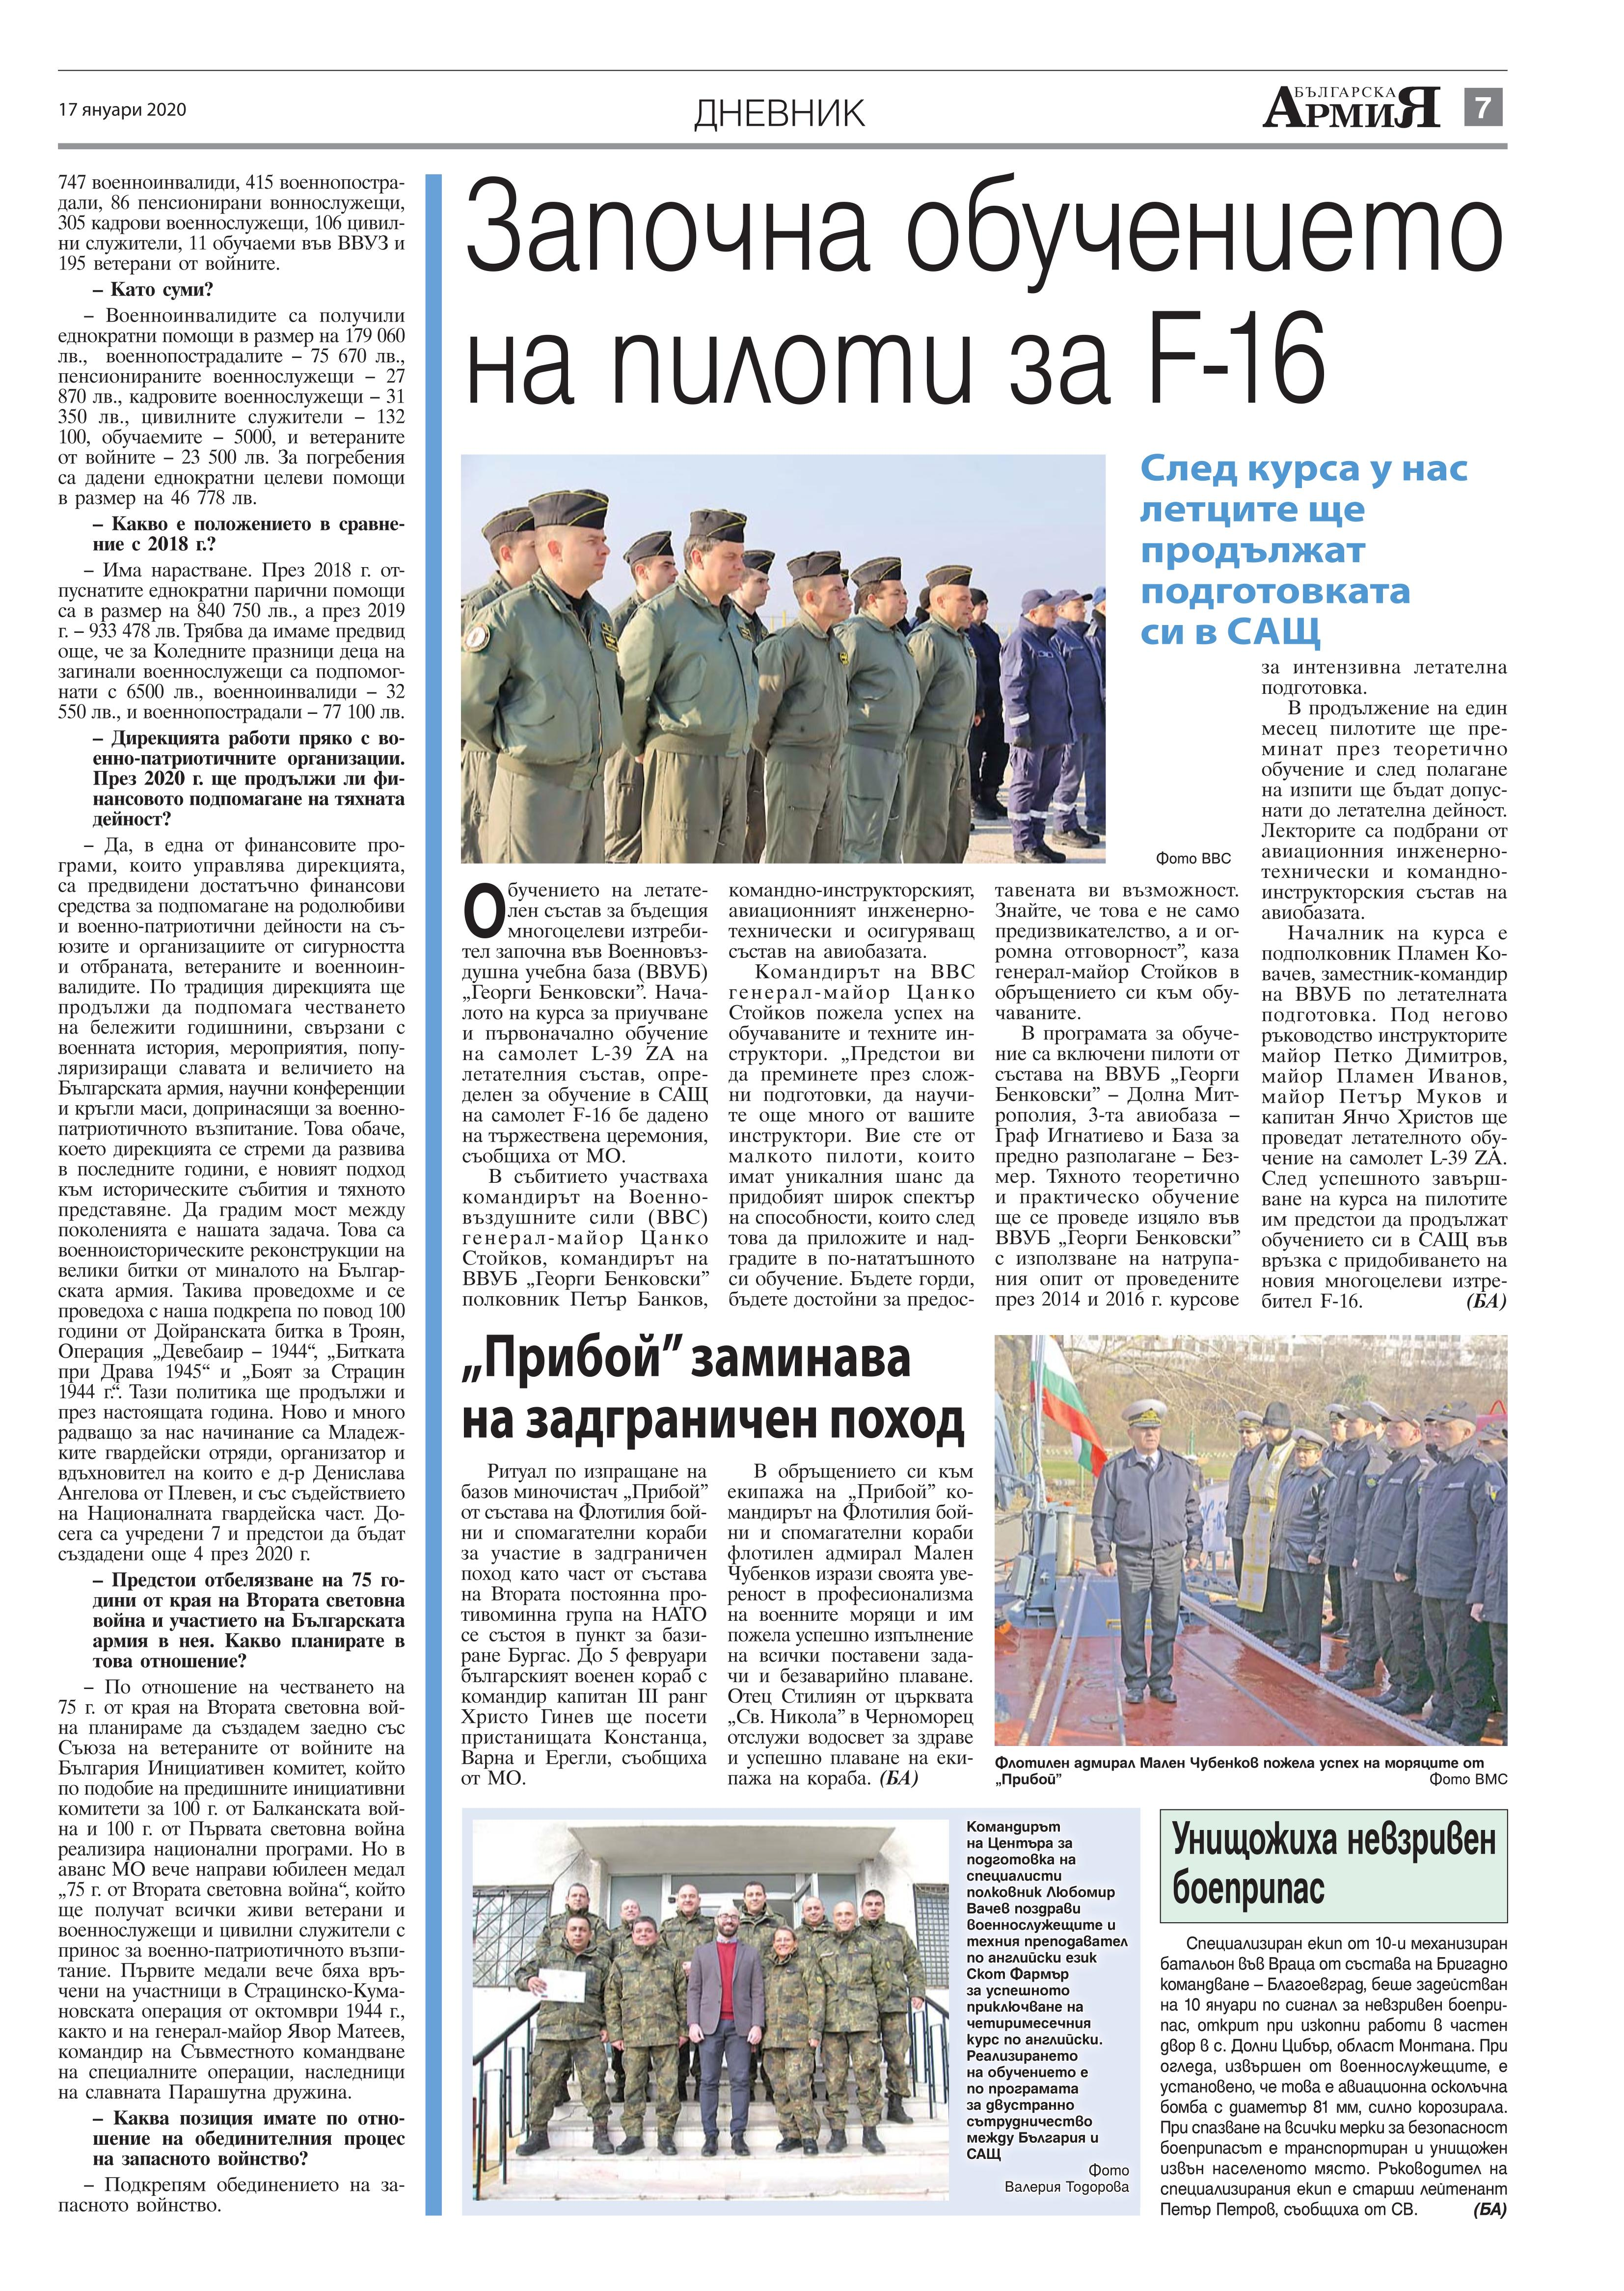 https://www.armymedia.bg/wp-content/uploads/2015/06/07.page1_-120.jpg